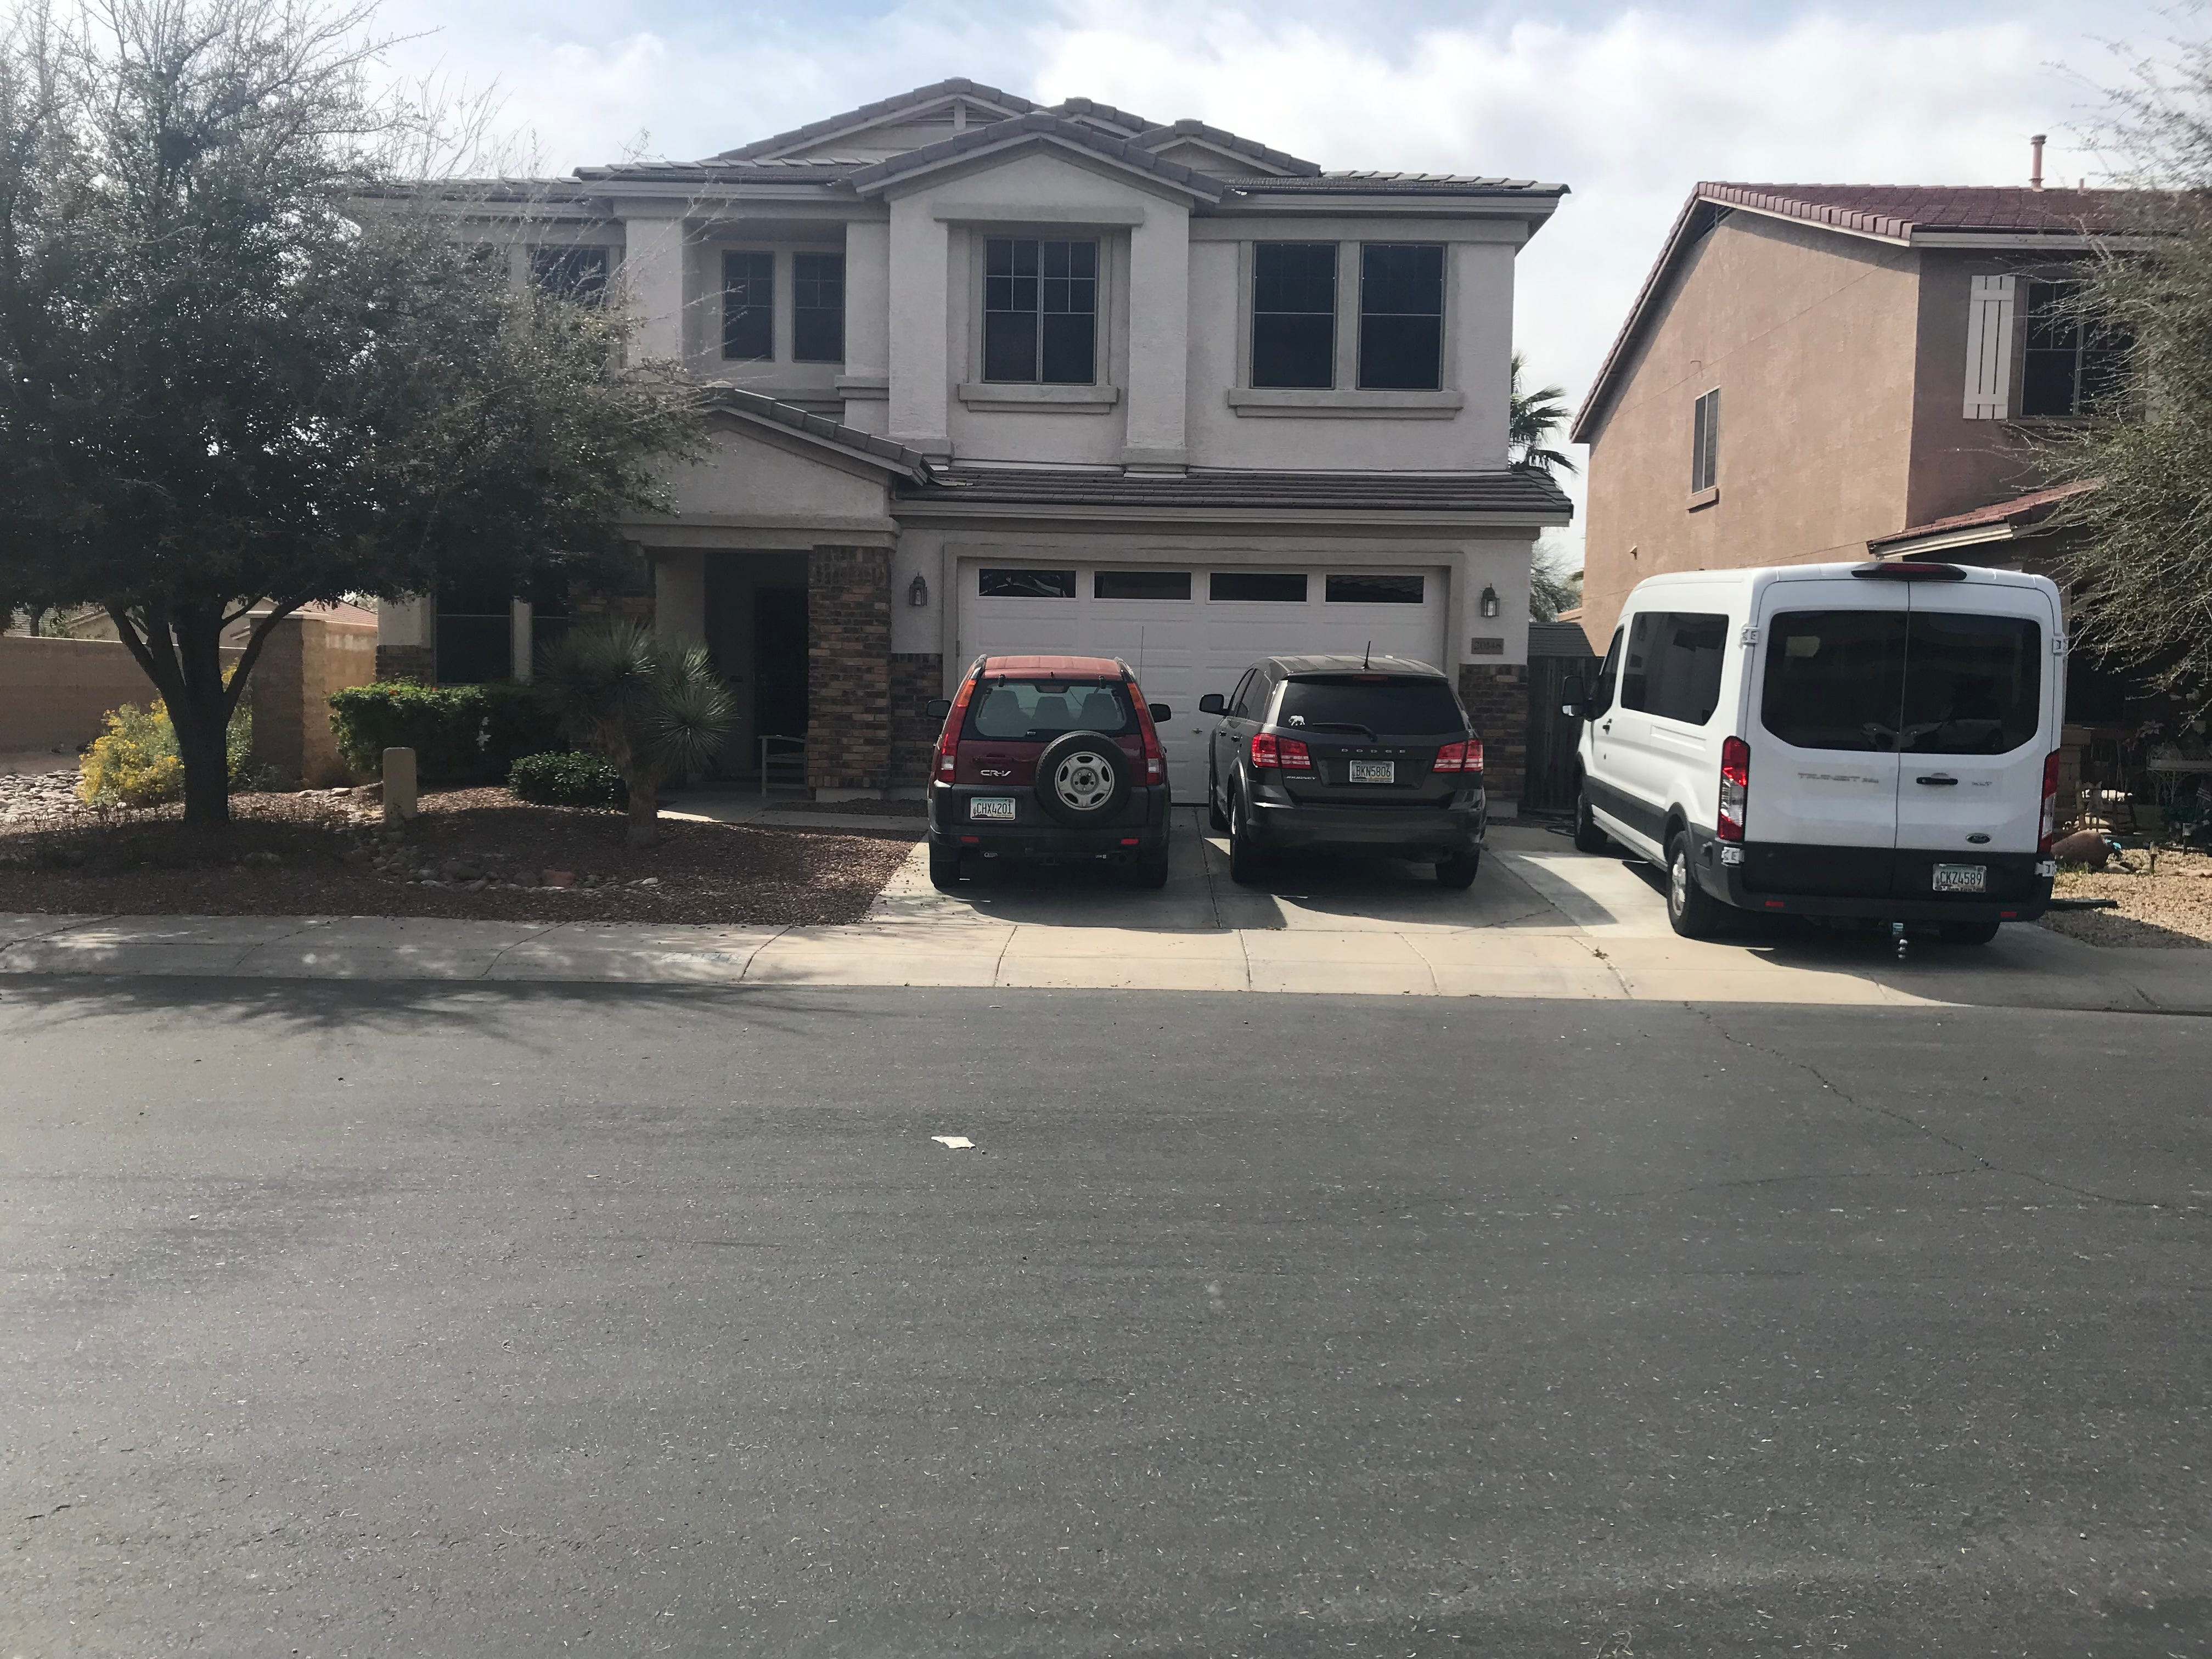 The Maricopa home of Machelle Hobson who is accused of abusing her 7 adopted children and using them to create YouTube videos.